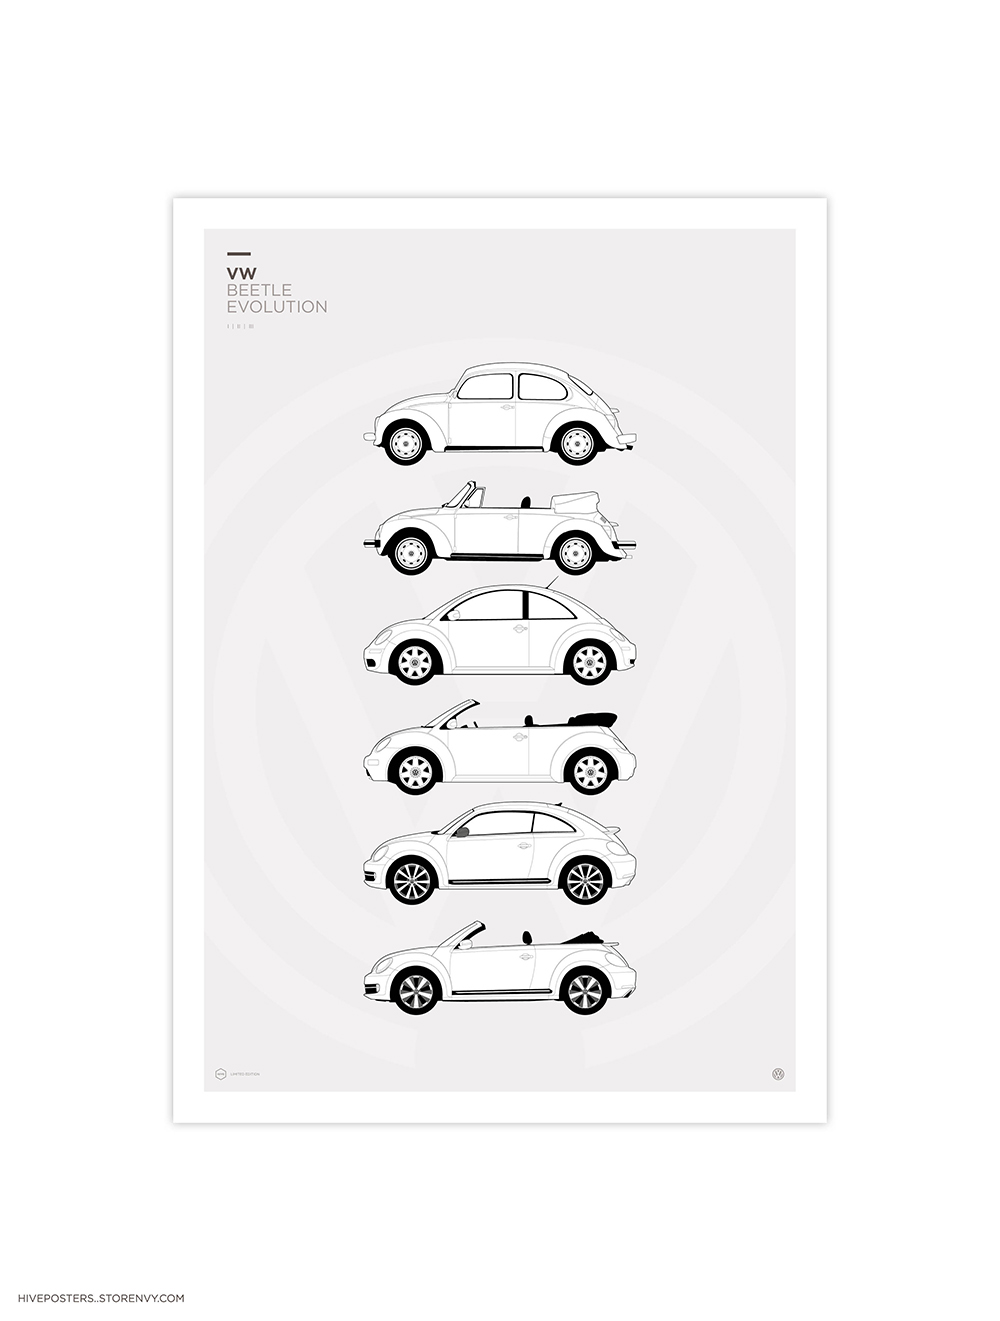 Vw Beetle Generations Hive Posters